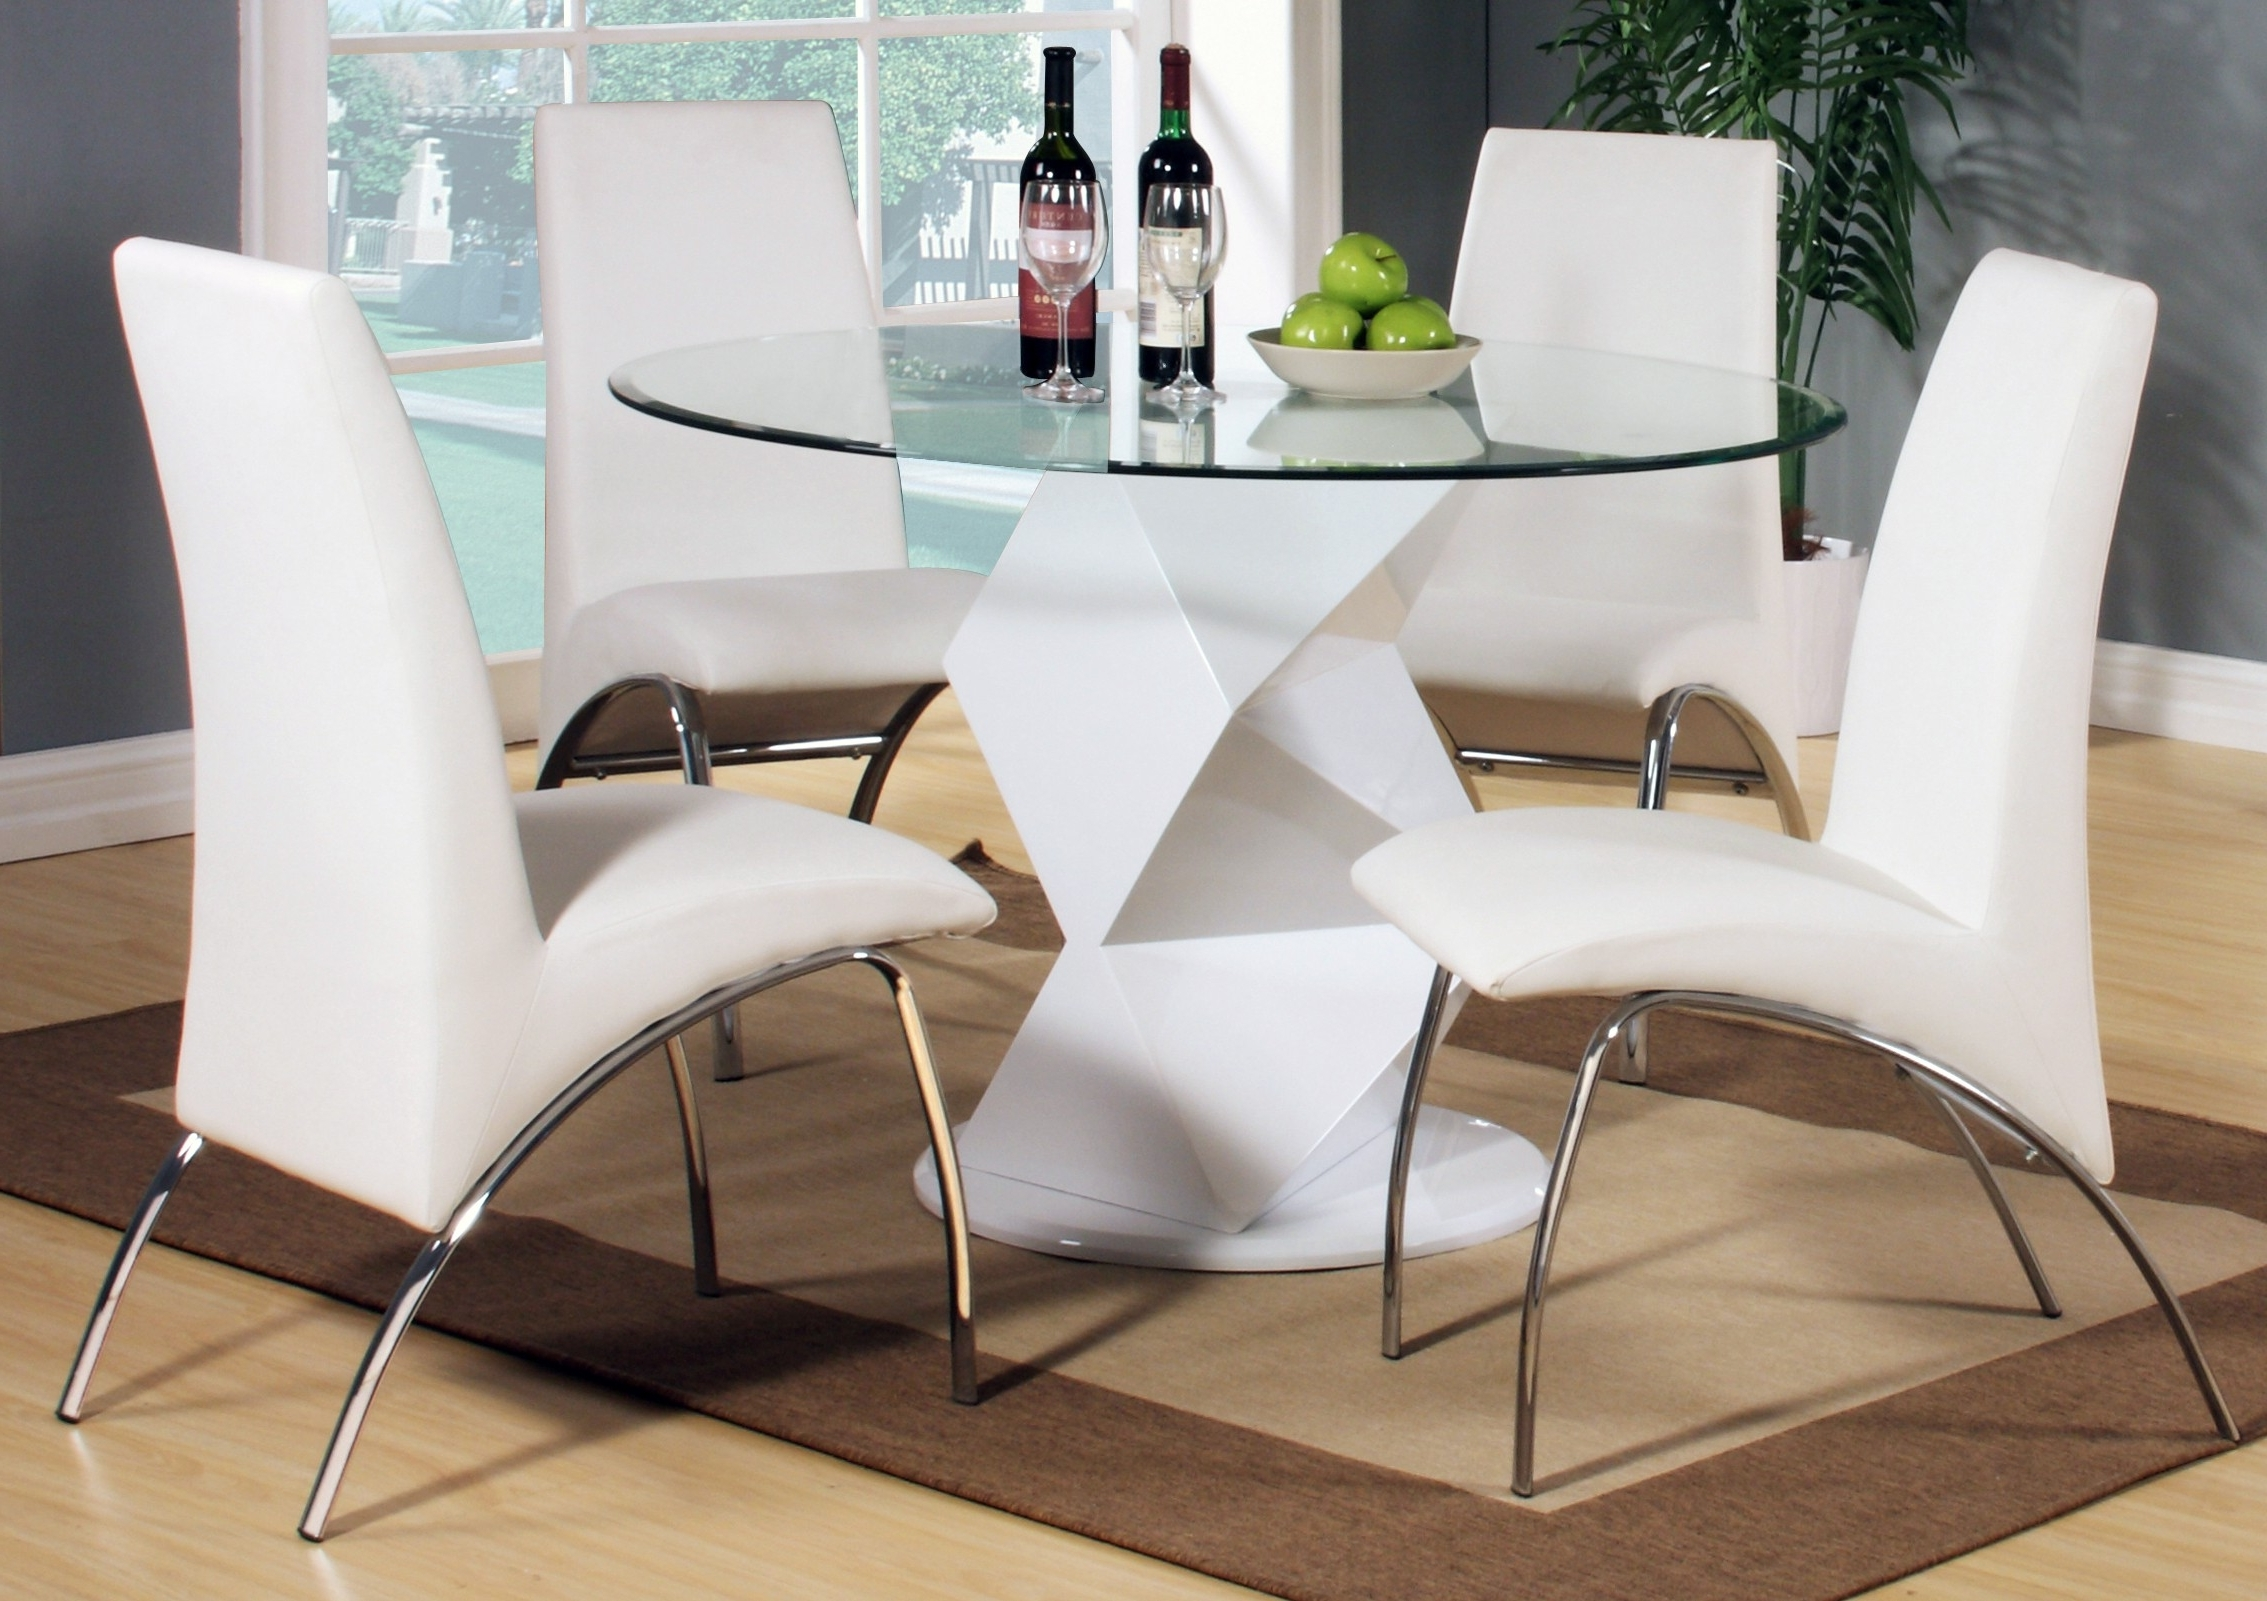 Most Recent Finn White High Gloss Round Dining Table Set 4 Seater In Oval White High Gloss Dining Tables (View 19 of 25)